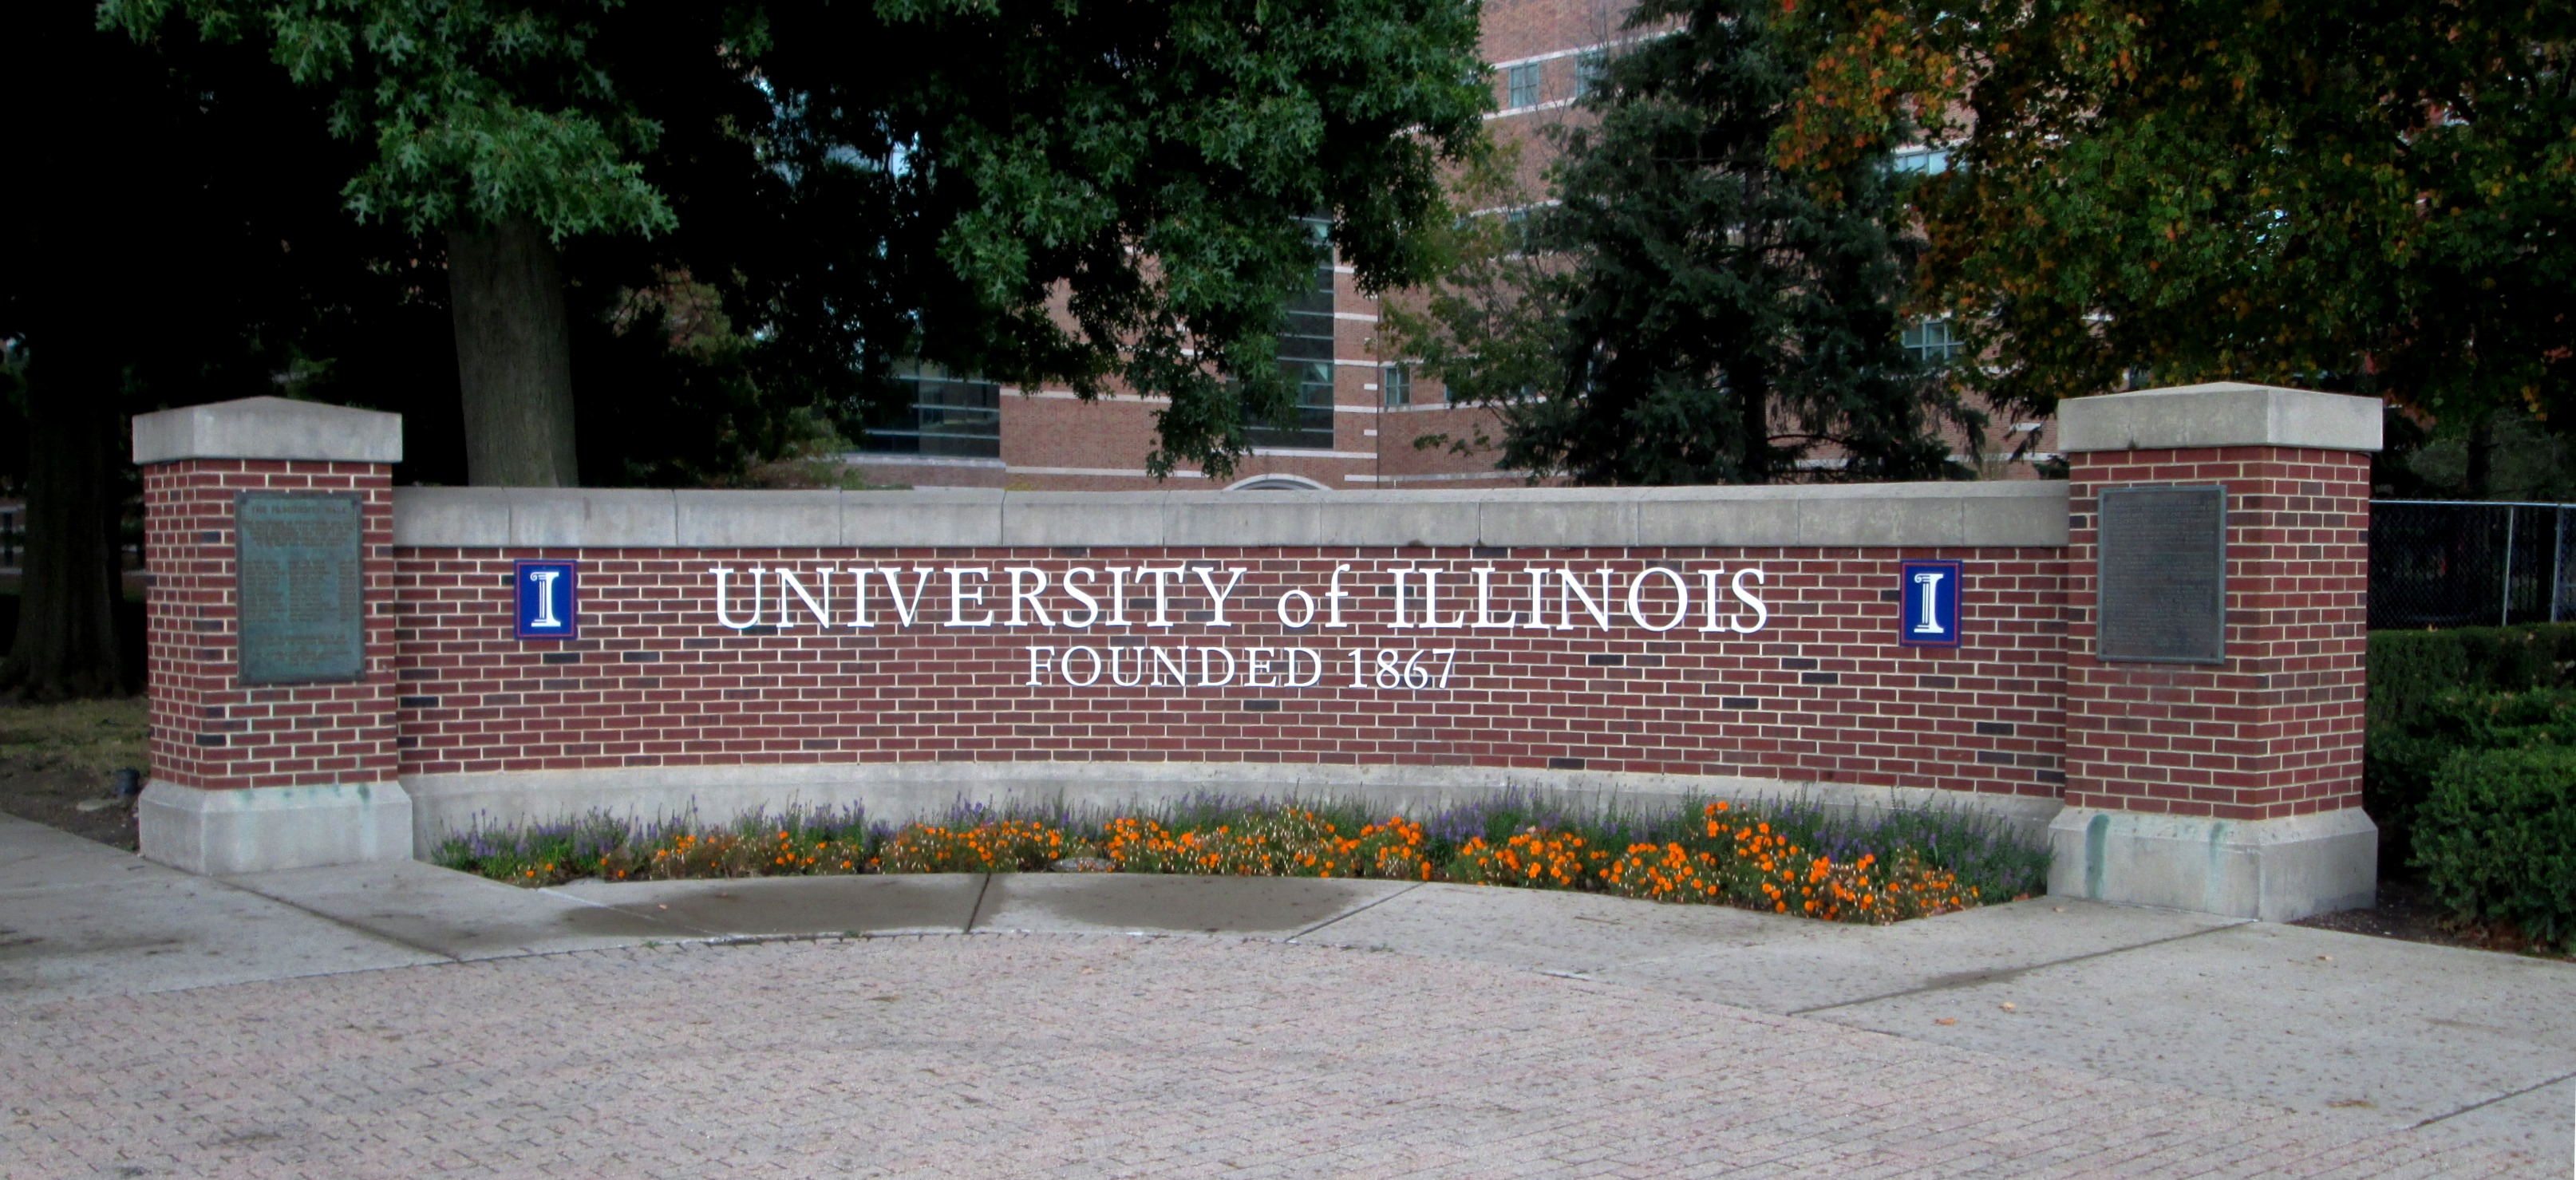 UNIVERSITY OF ILLINOIS – CHICAGO, ILLINOIS